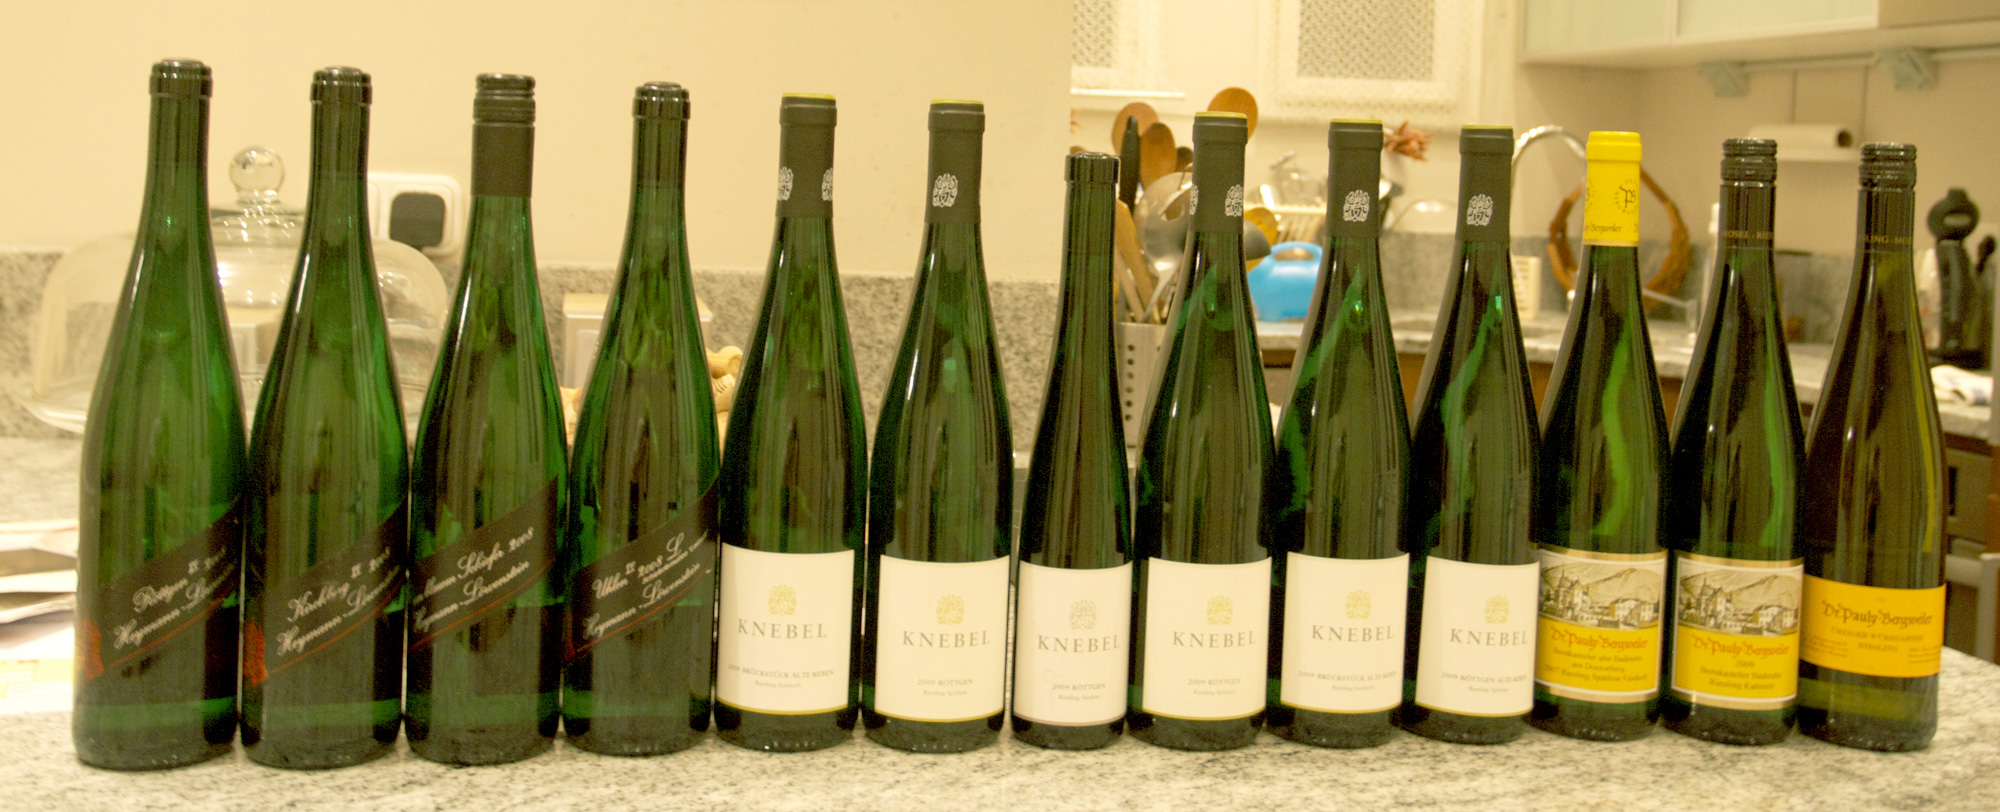 A few souvenirs from the Mosel